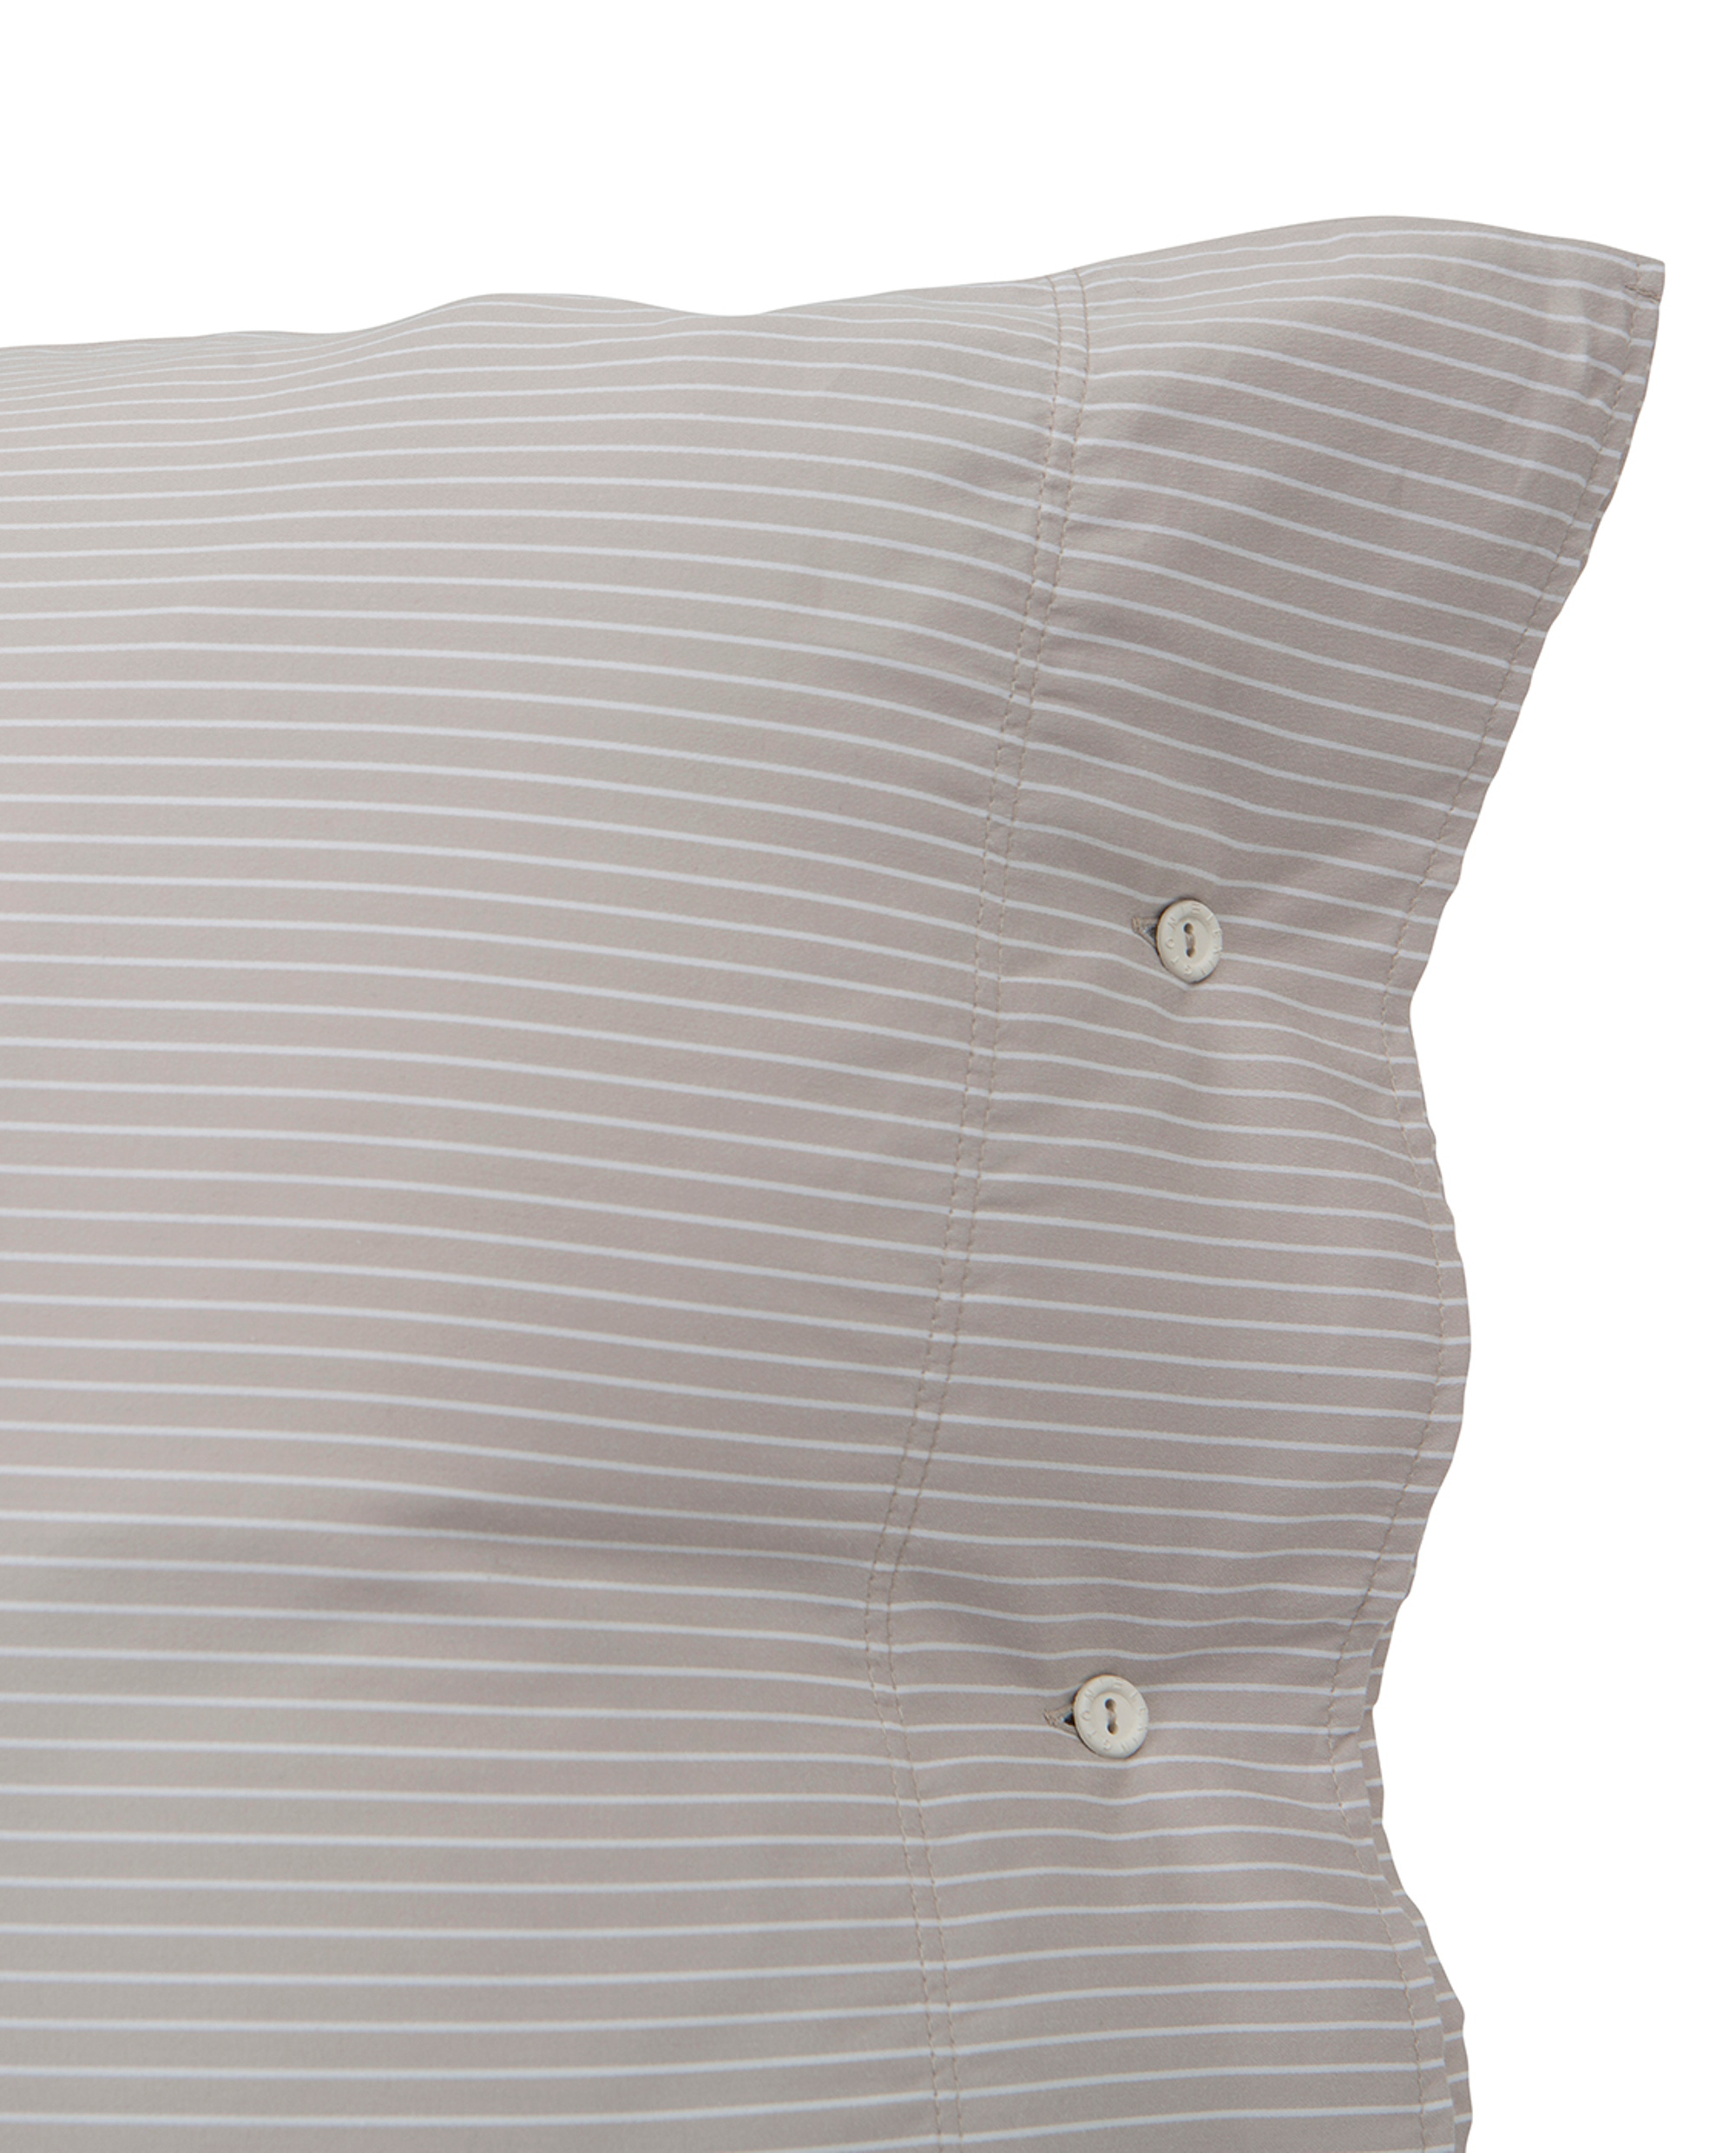 Hotel Tencel Stripe Lt Beige/White Pillowcase